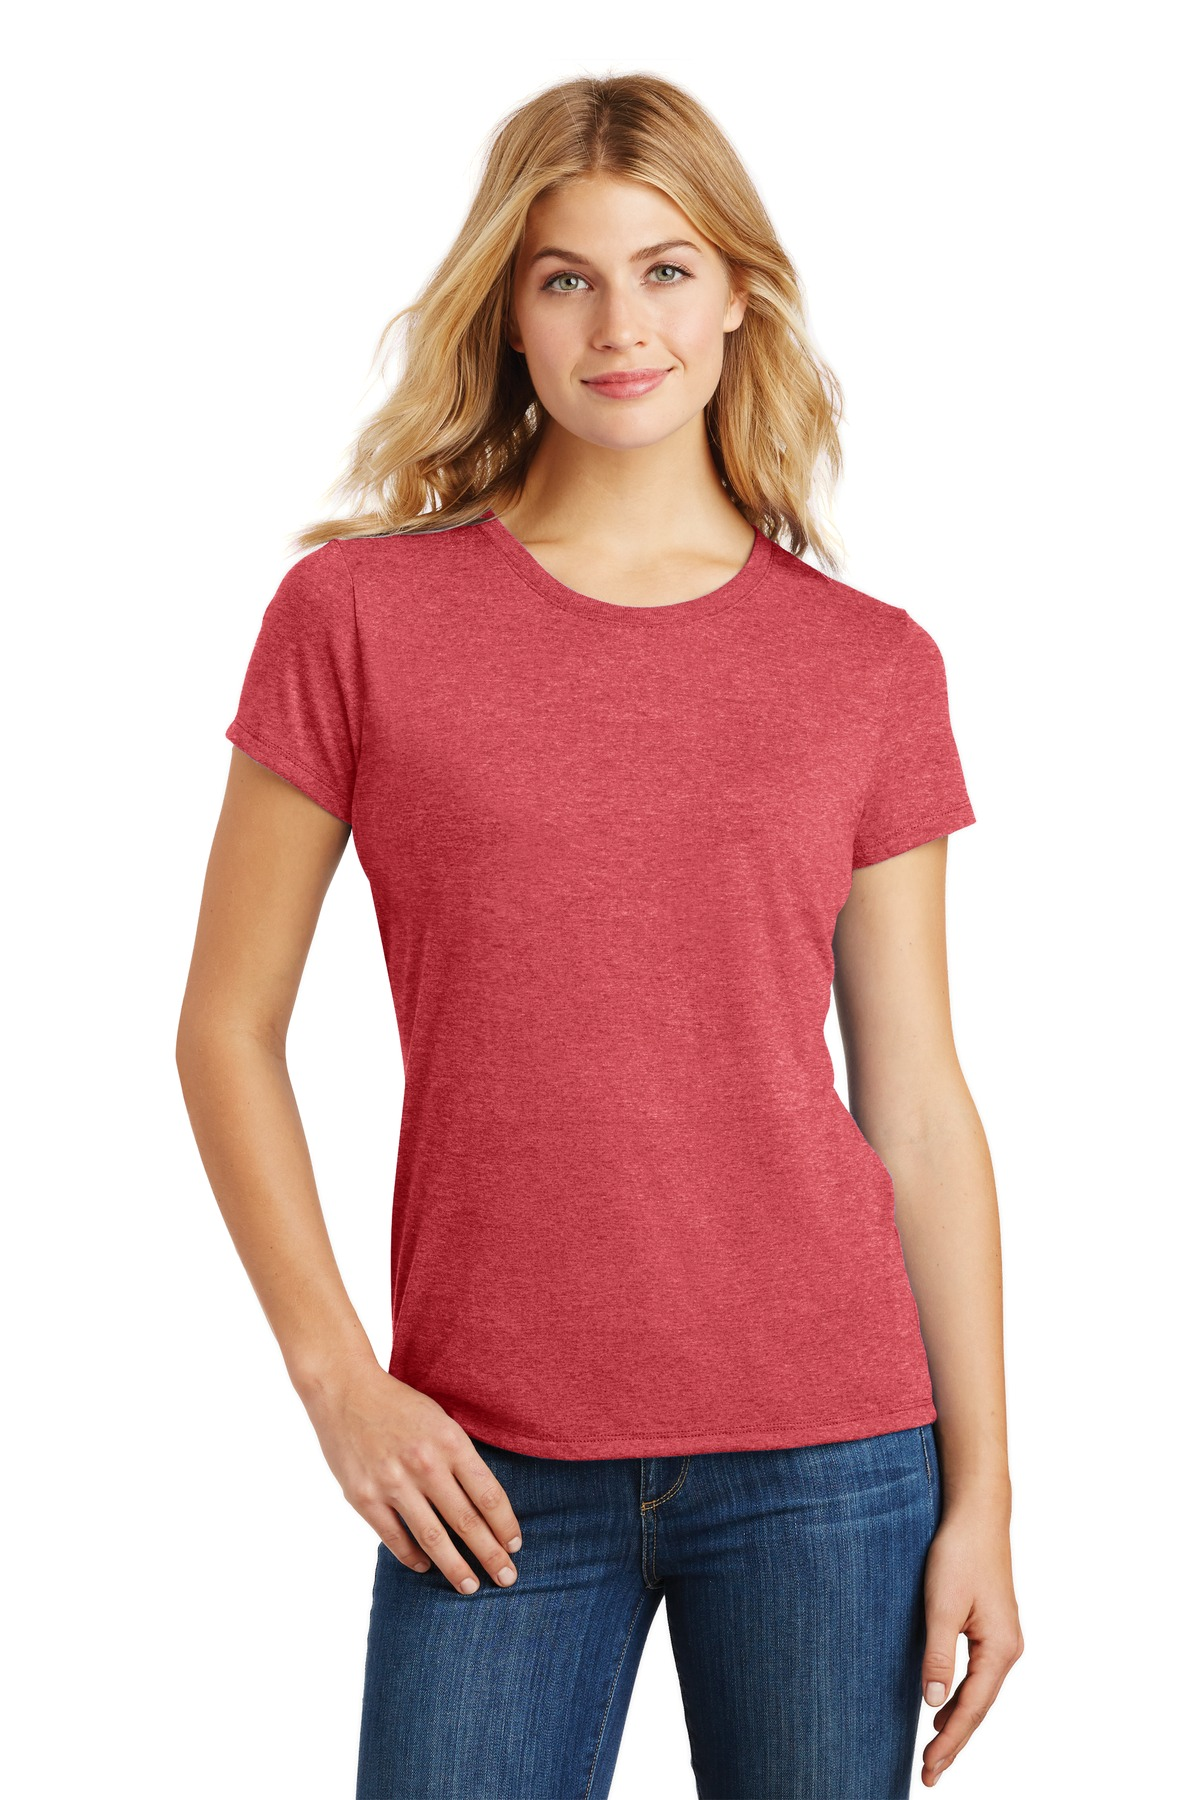 District  ®  Women's Perfect Tri ®  Tee. DM130L - Red Frost